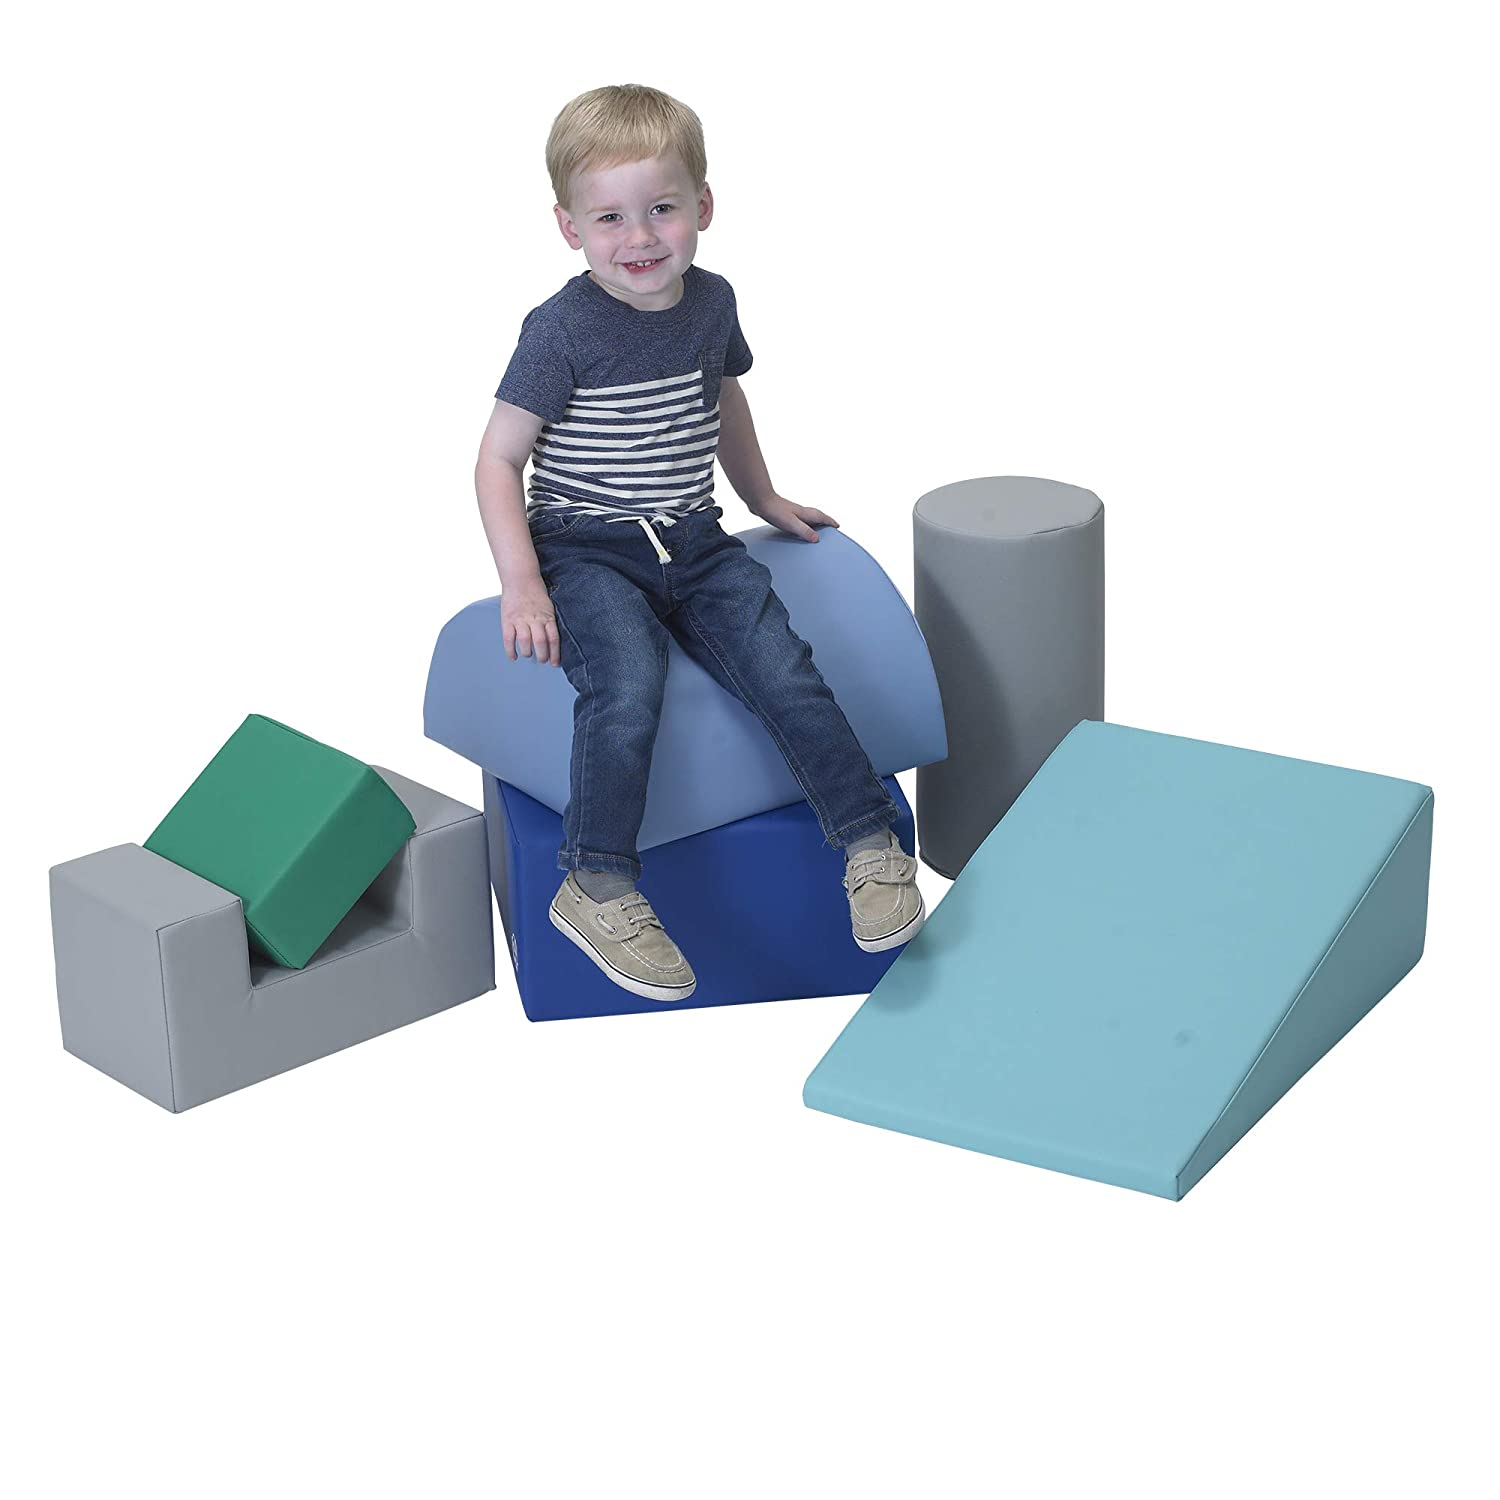 Indoor Play Equipment for Homeschool//Classroom//Playroom Childrens Factory Climb /& Play 6 Piece Set for Toddlers Woodland Colors Baby Climbing Toys